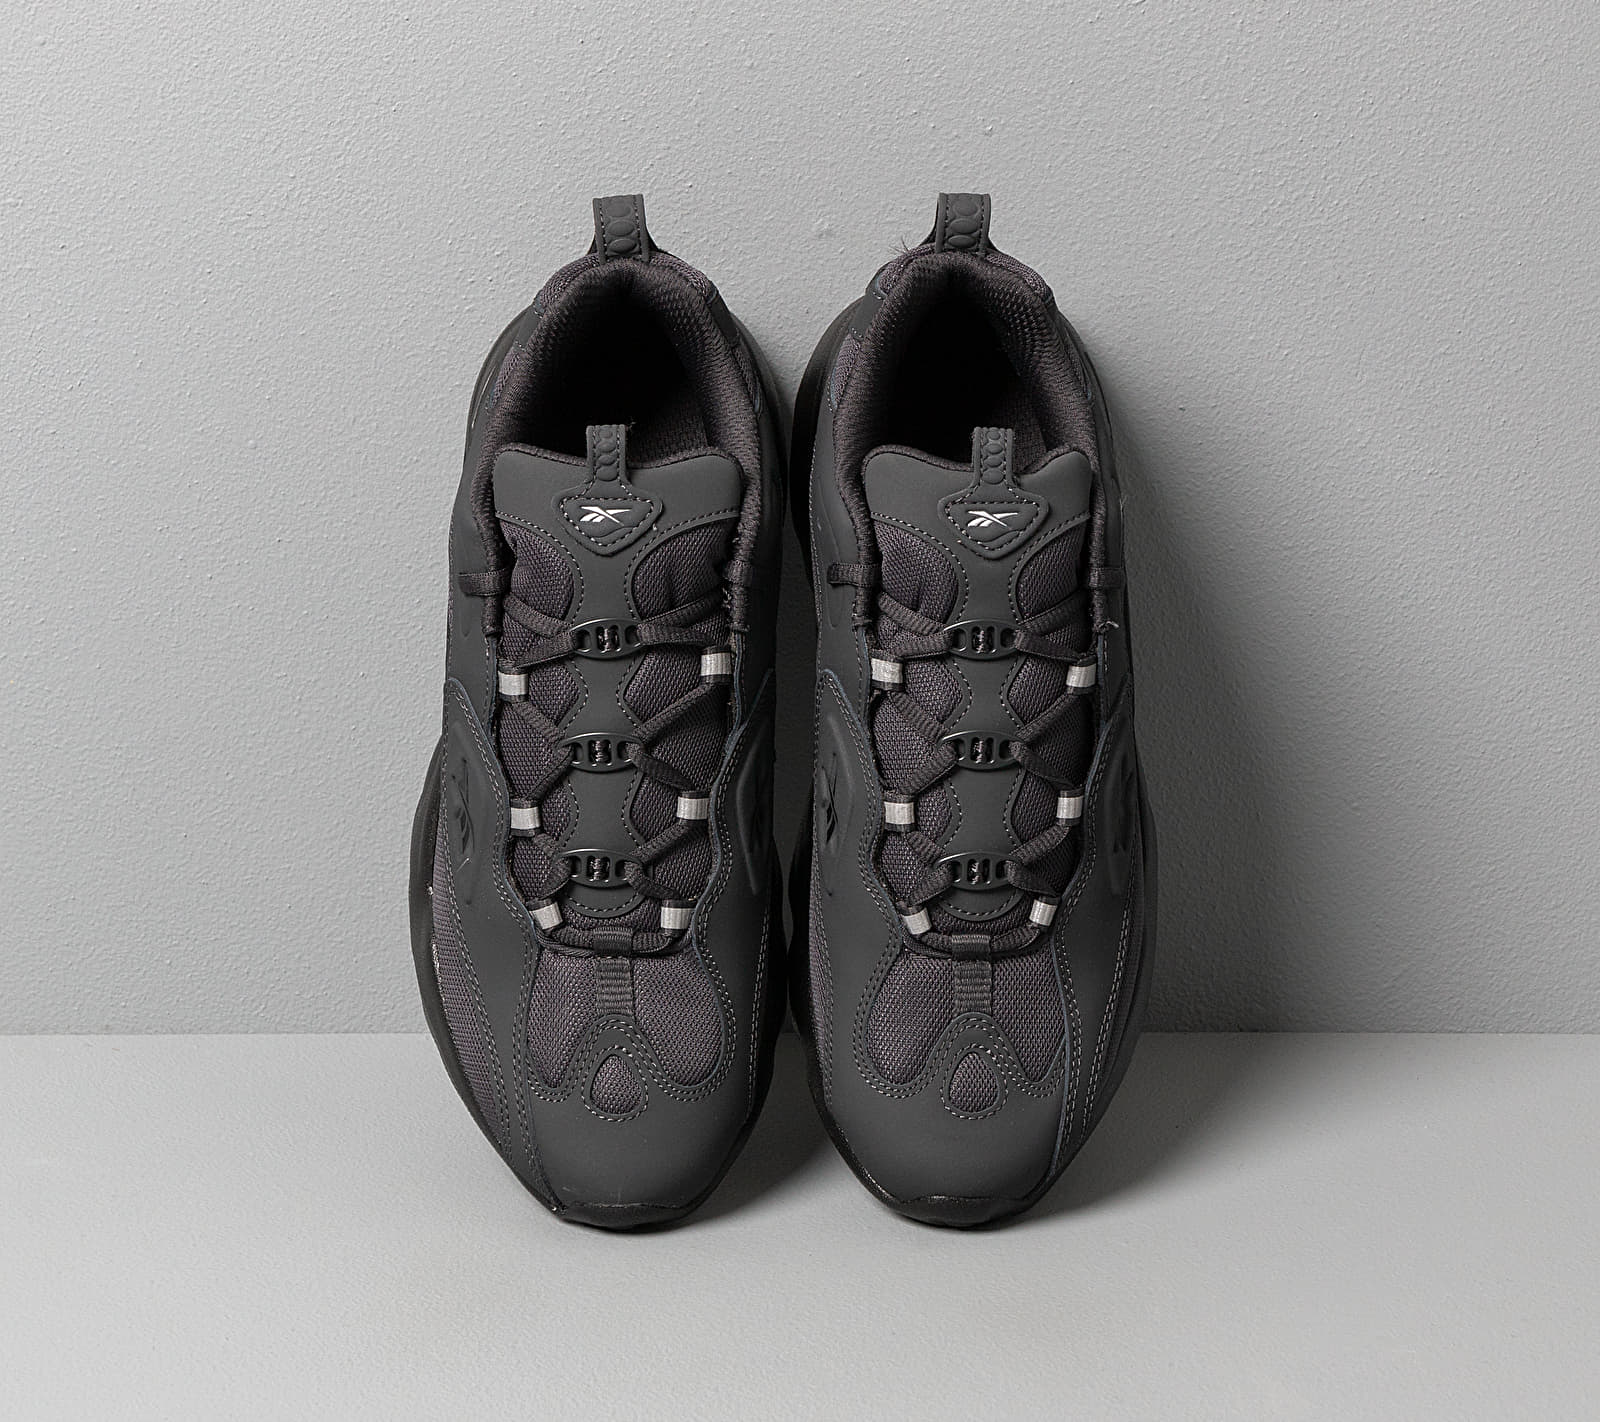 Reebok Electro 3D 97 Black/ True Grey, Gray